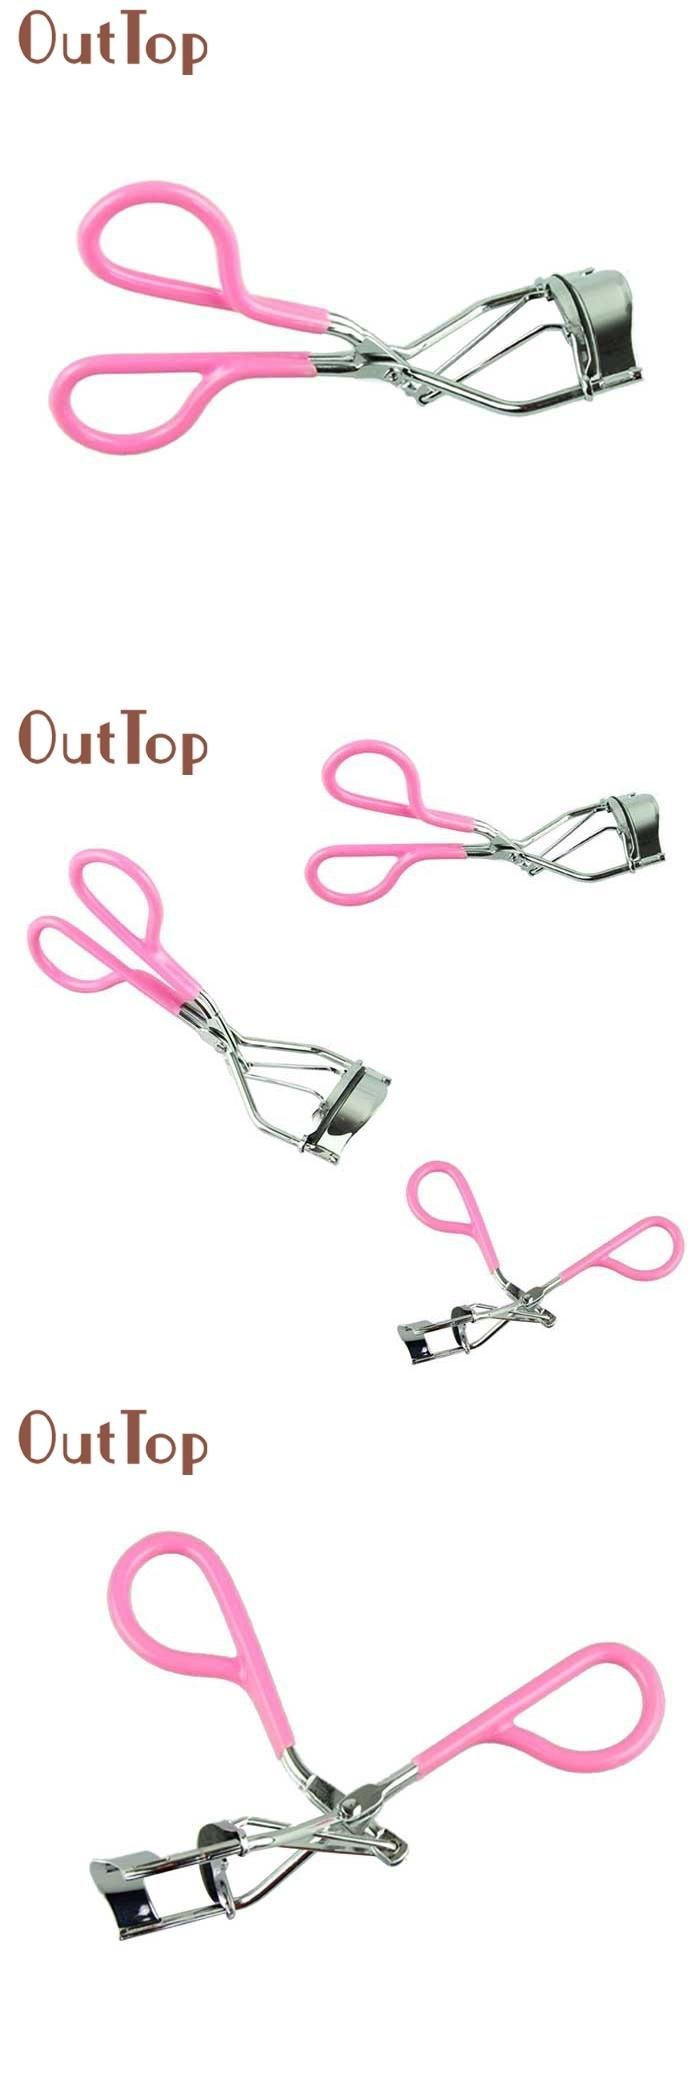 [Visit to Buy] OutTop New Pink Eyelash Curler Lash Curler Nature Curl Style Cute Curl Eyelash Curlers-Silver Beauty Tools best deal 1pcs #Advertisement